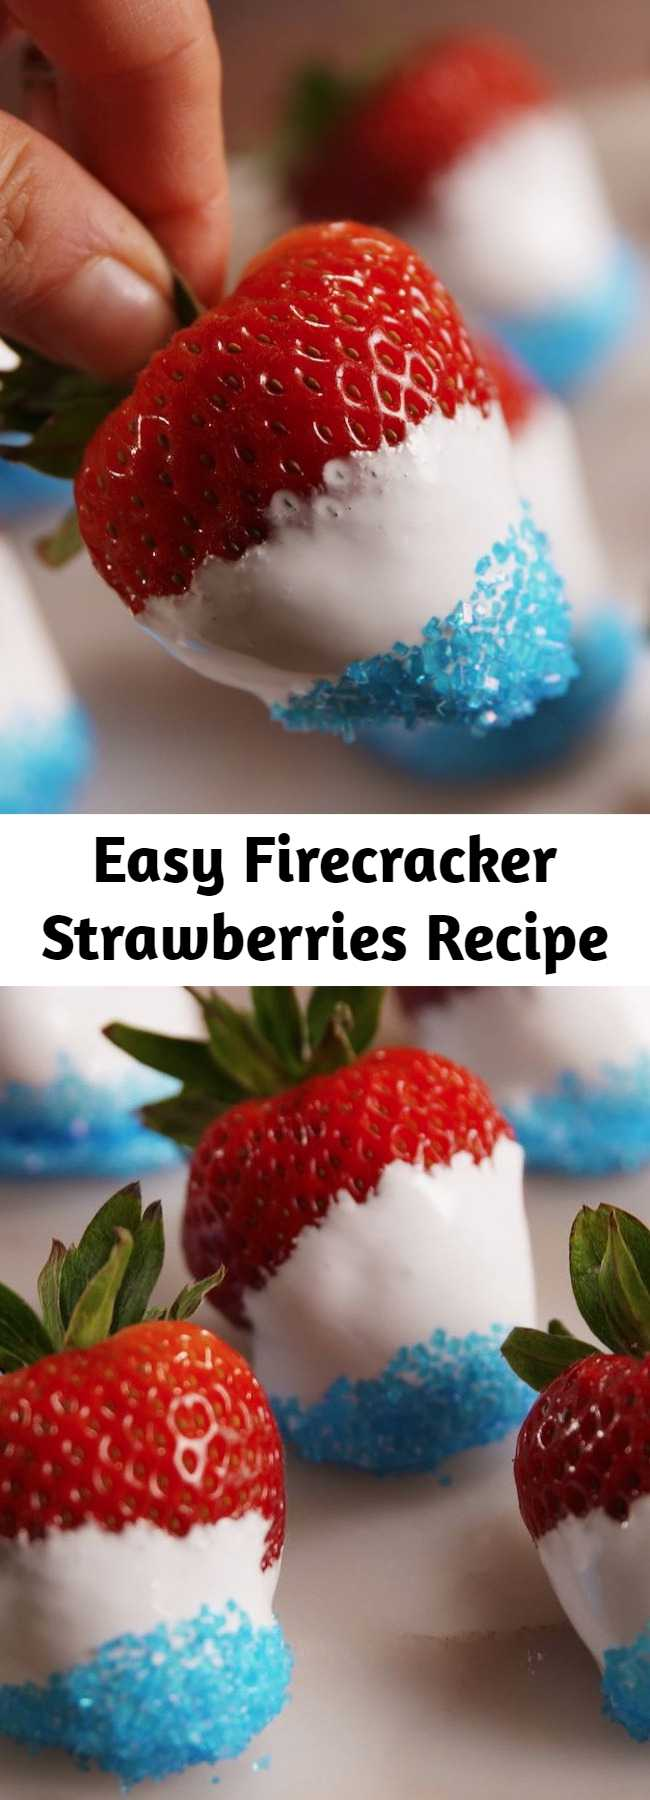 Easy Firecracker Strawberries Recipe - These firecracker strawberries are a no brainer for any fourth of July party. These Red, White, and Blue Desserts Will Get More Attention Than The Fireworks.